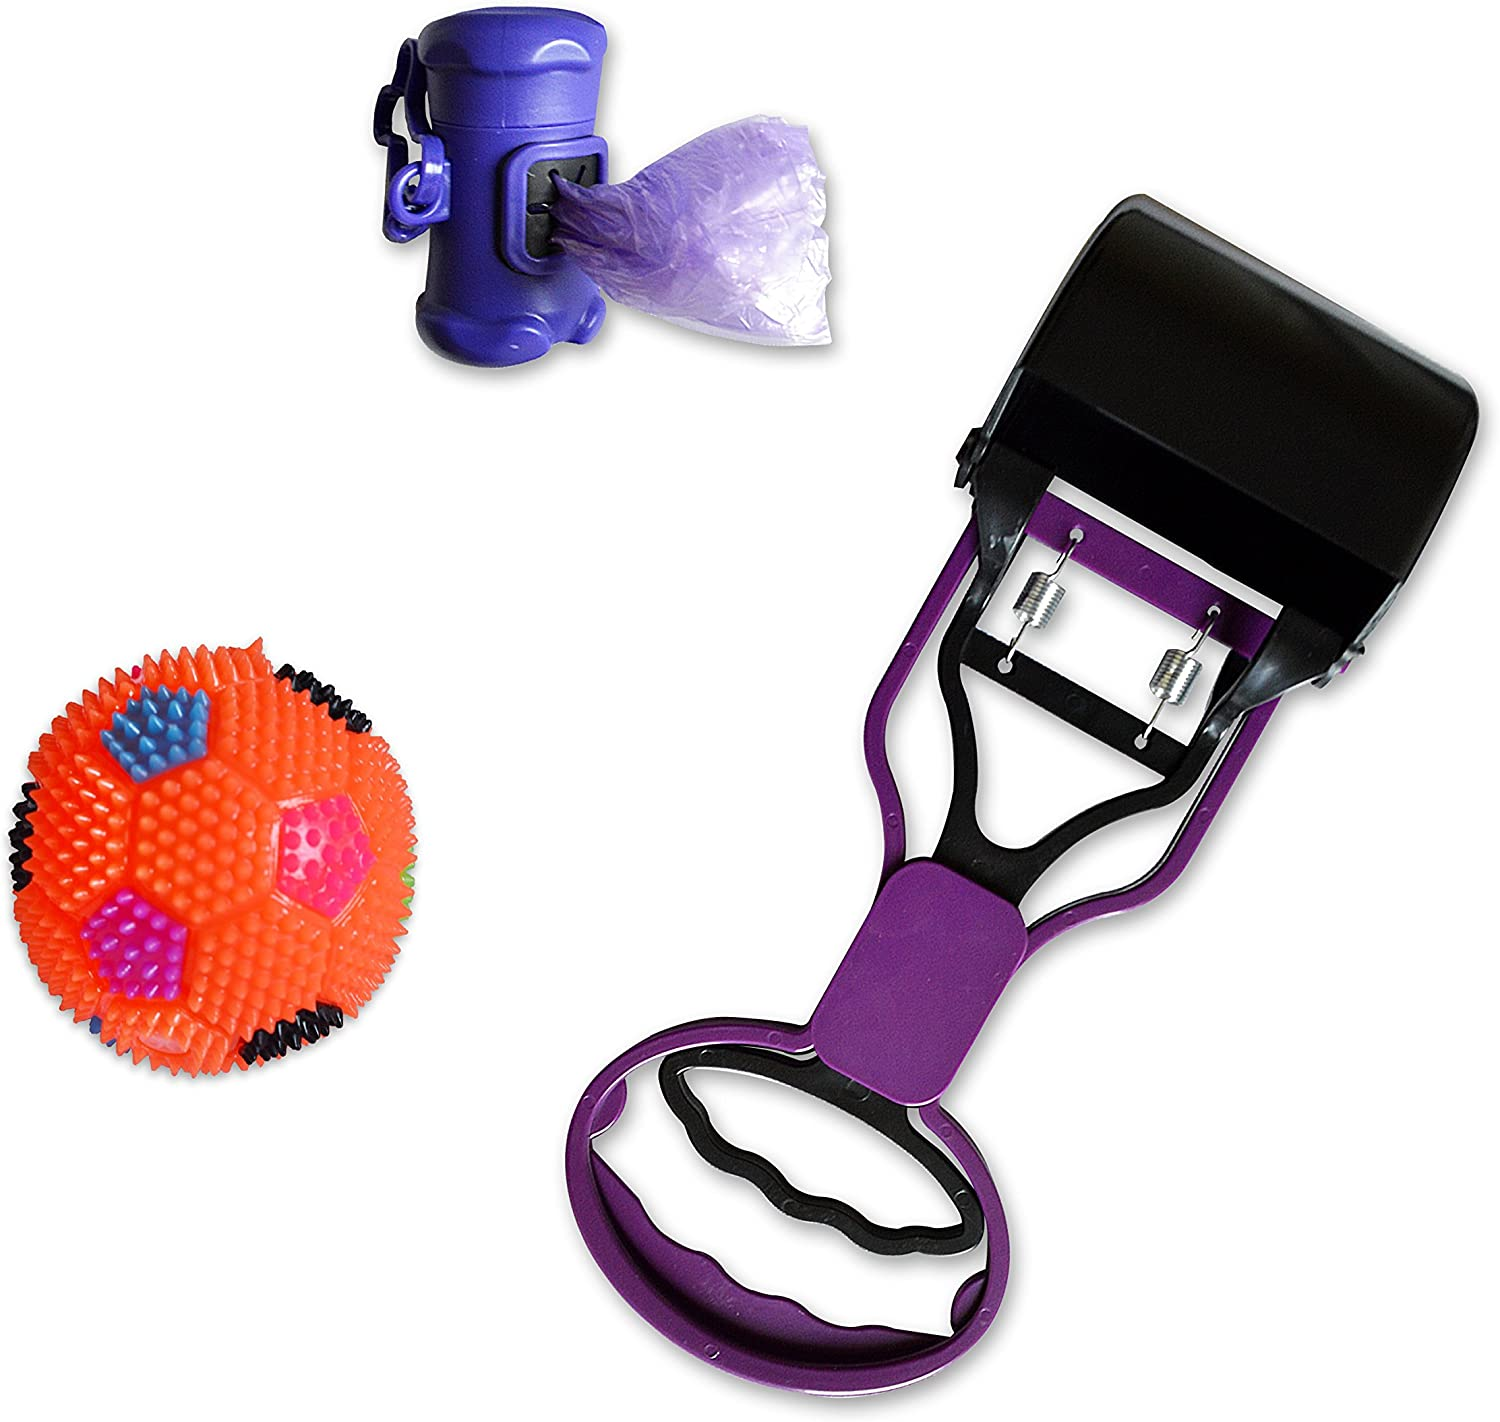 New PawsForce Portable Jaw Clamp Pooper Scooper Set with Poop Bag Holder and 30 Waste Bags, Draw String Backpack and Bonus LED Dog Ball, for Small and Medium Dogs